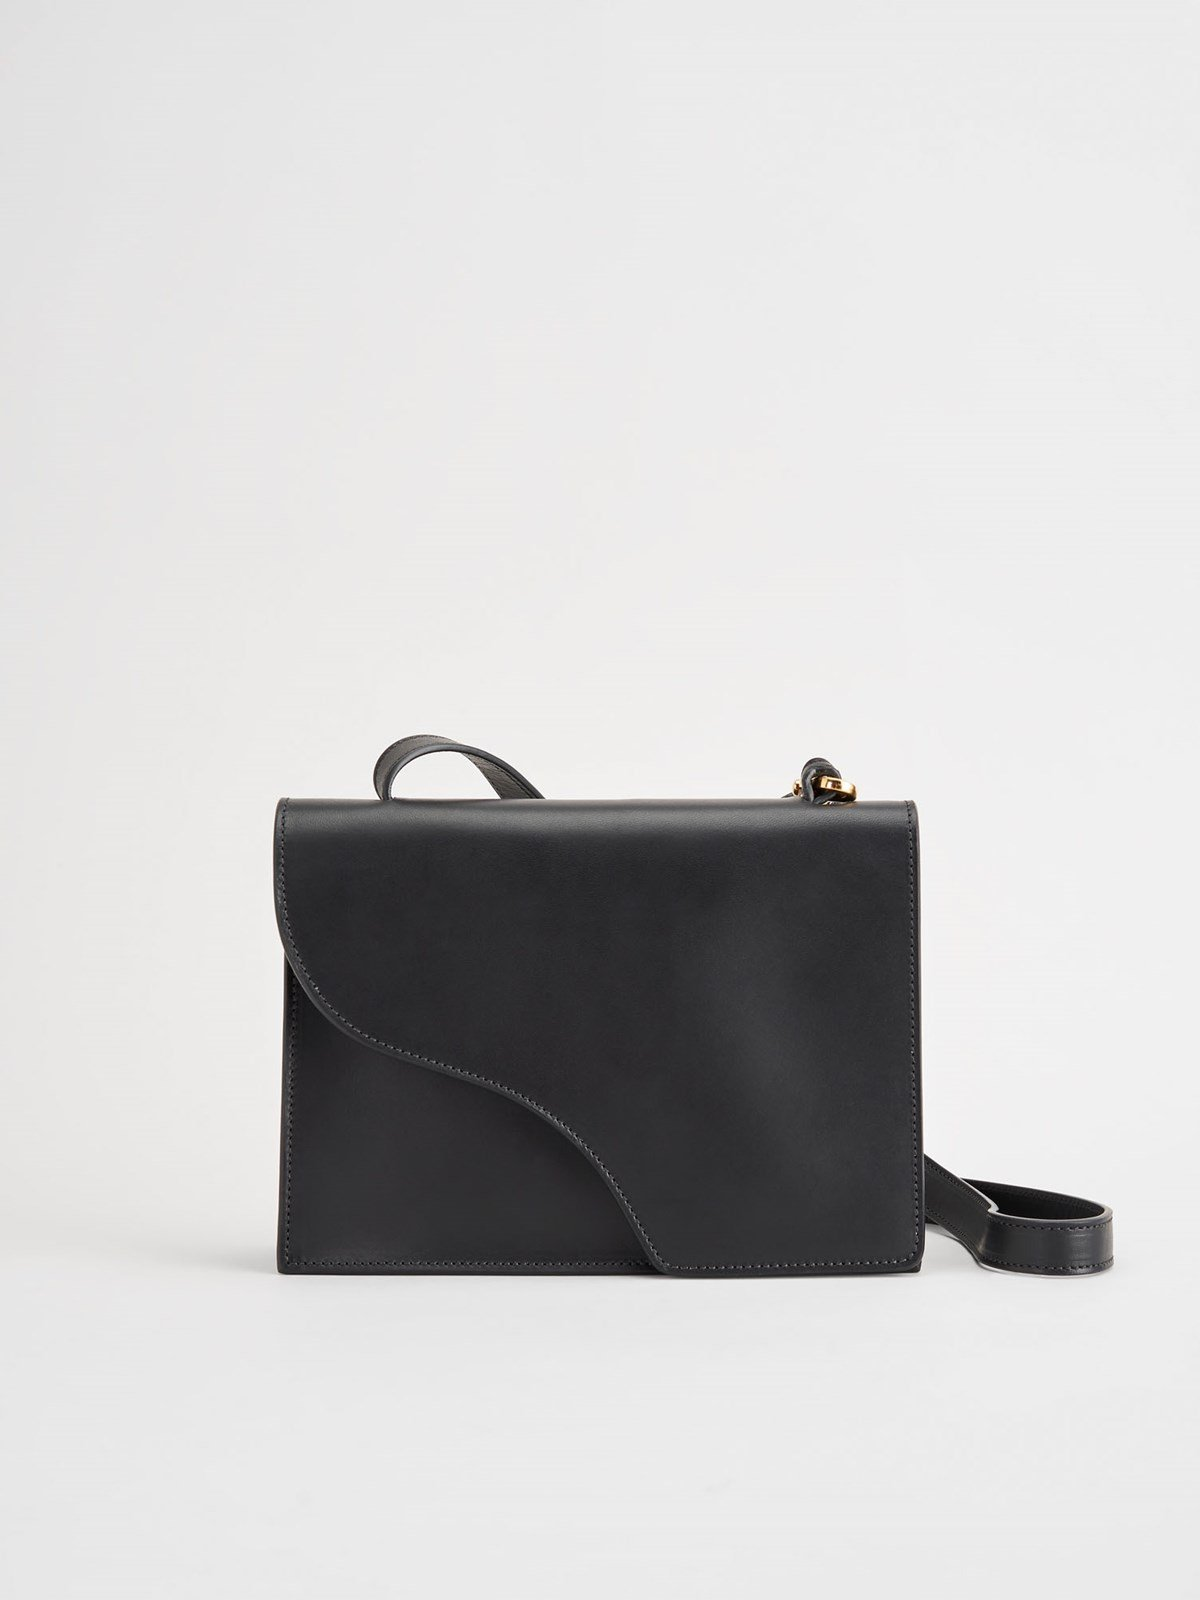 Siena Black Crossbody bag